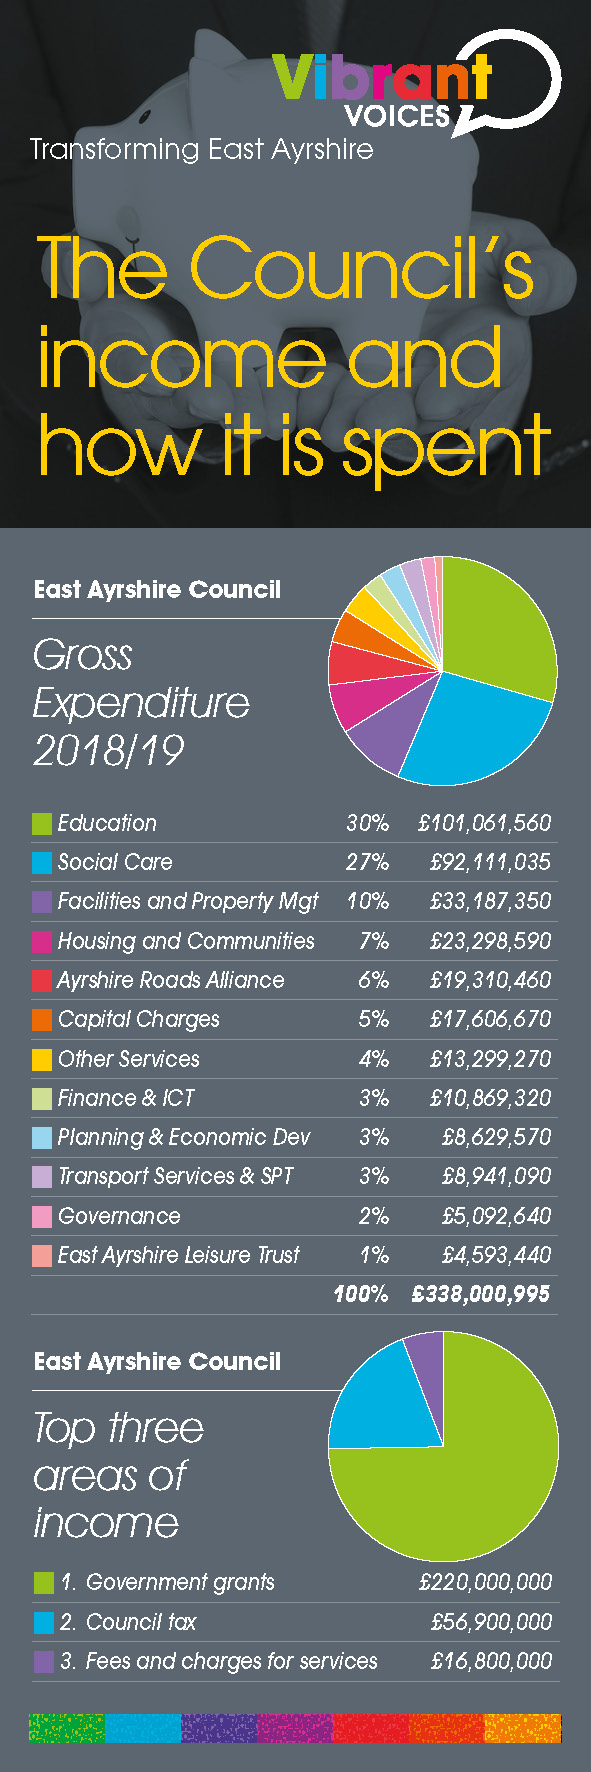 Councils income and how it is spent